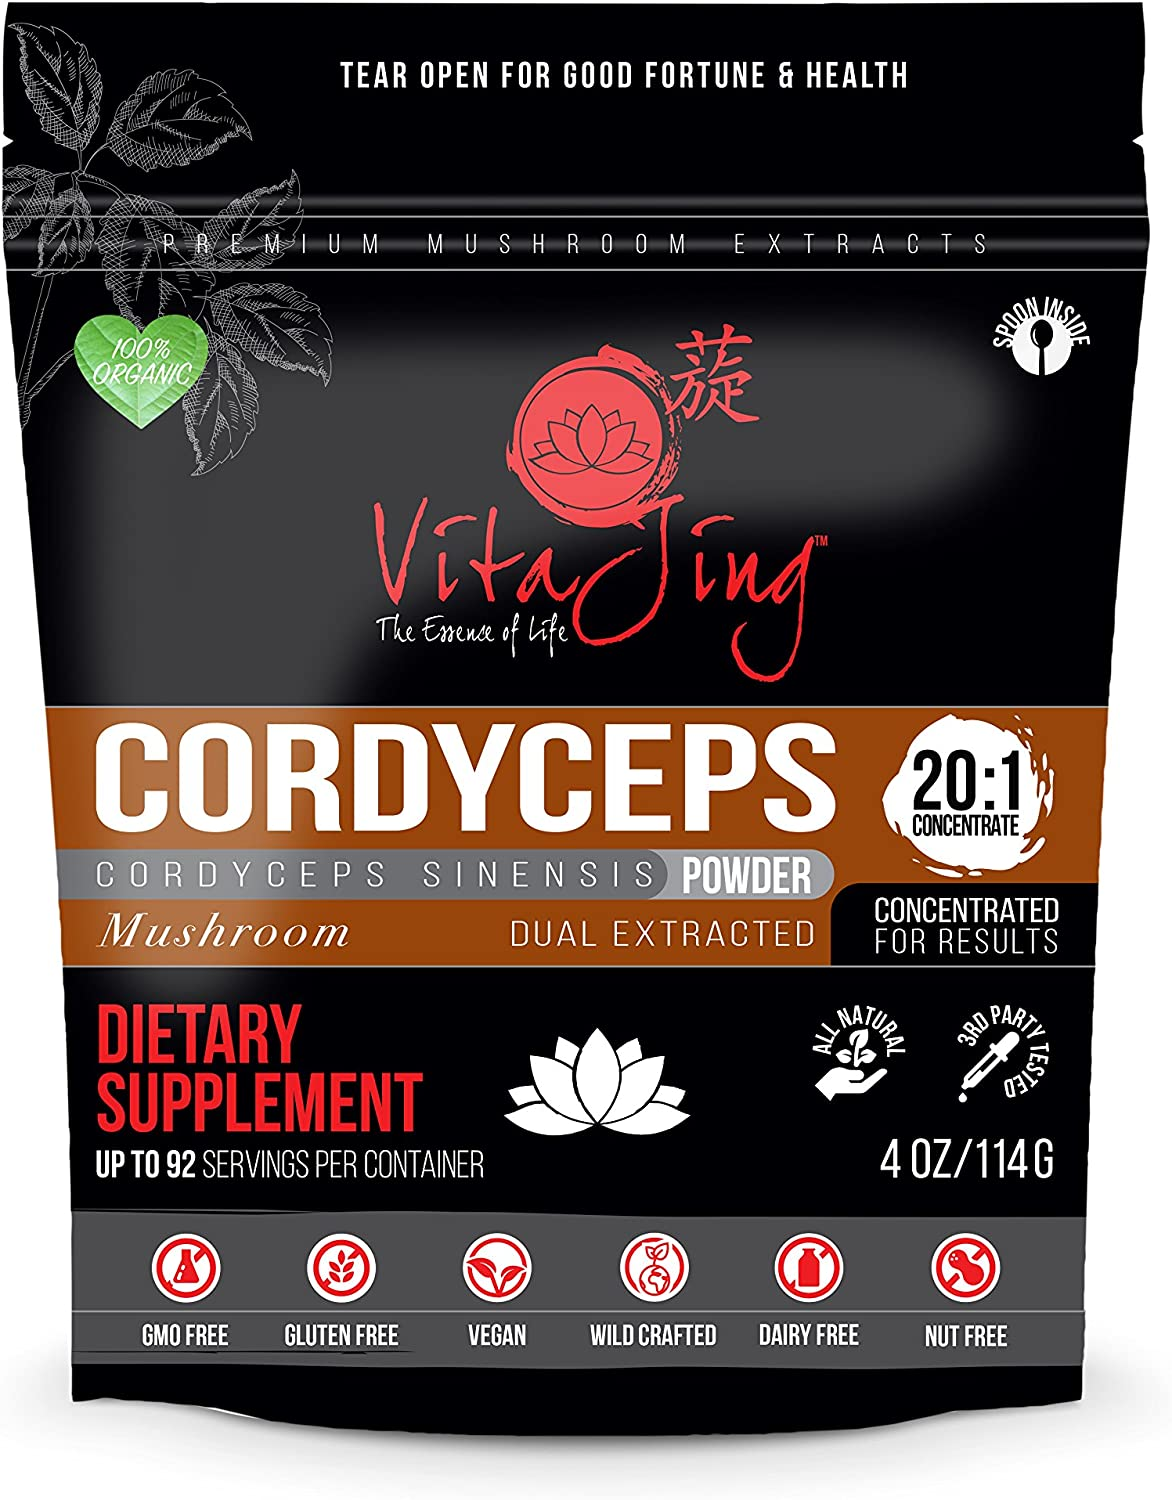 Cordyceps Sinensis Mushroom Extract Powder 20 1 Concentration 4oz-114gm